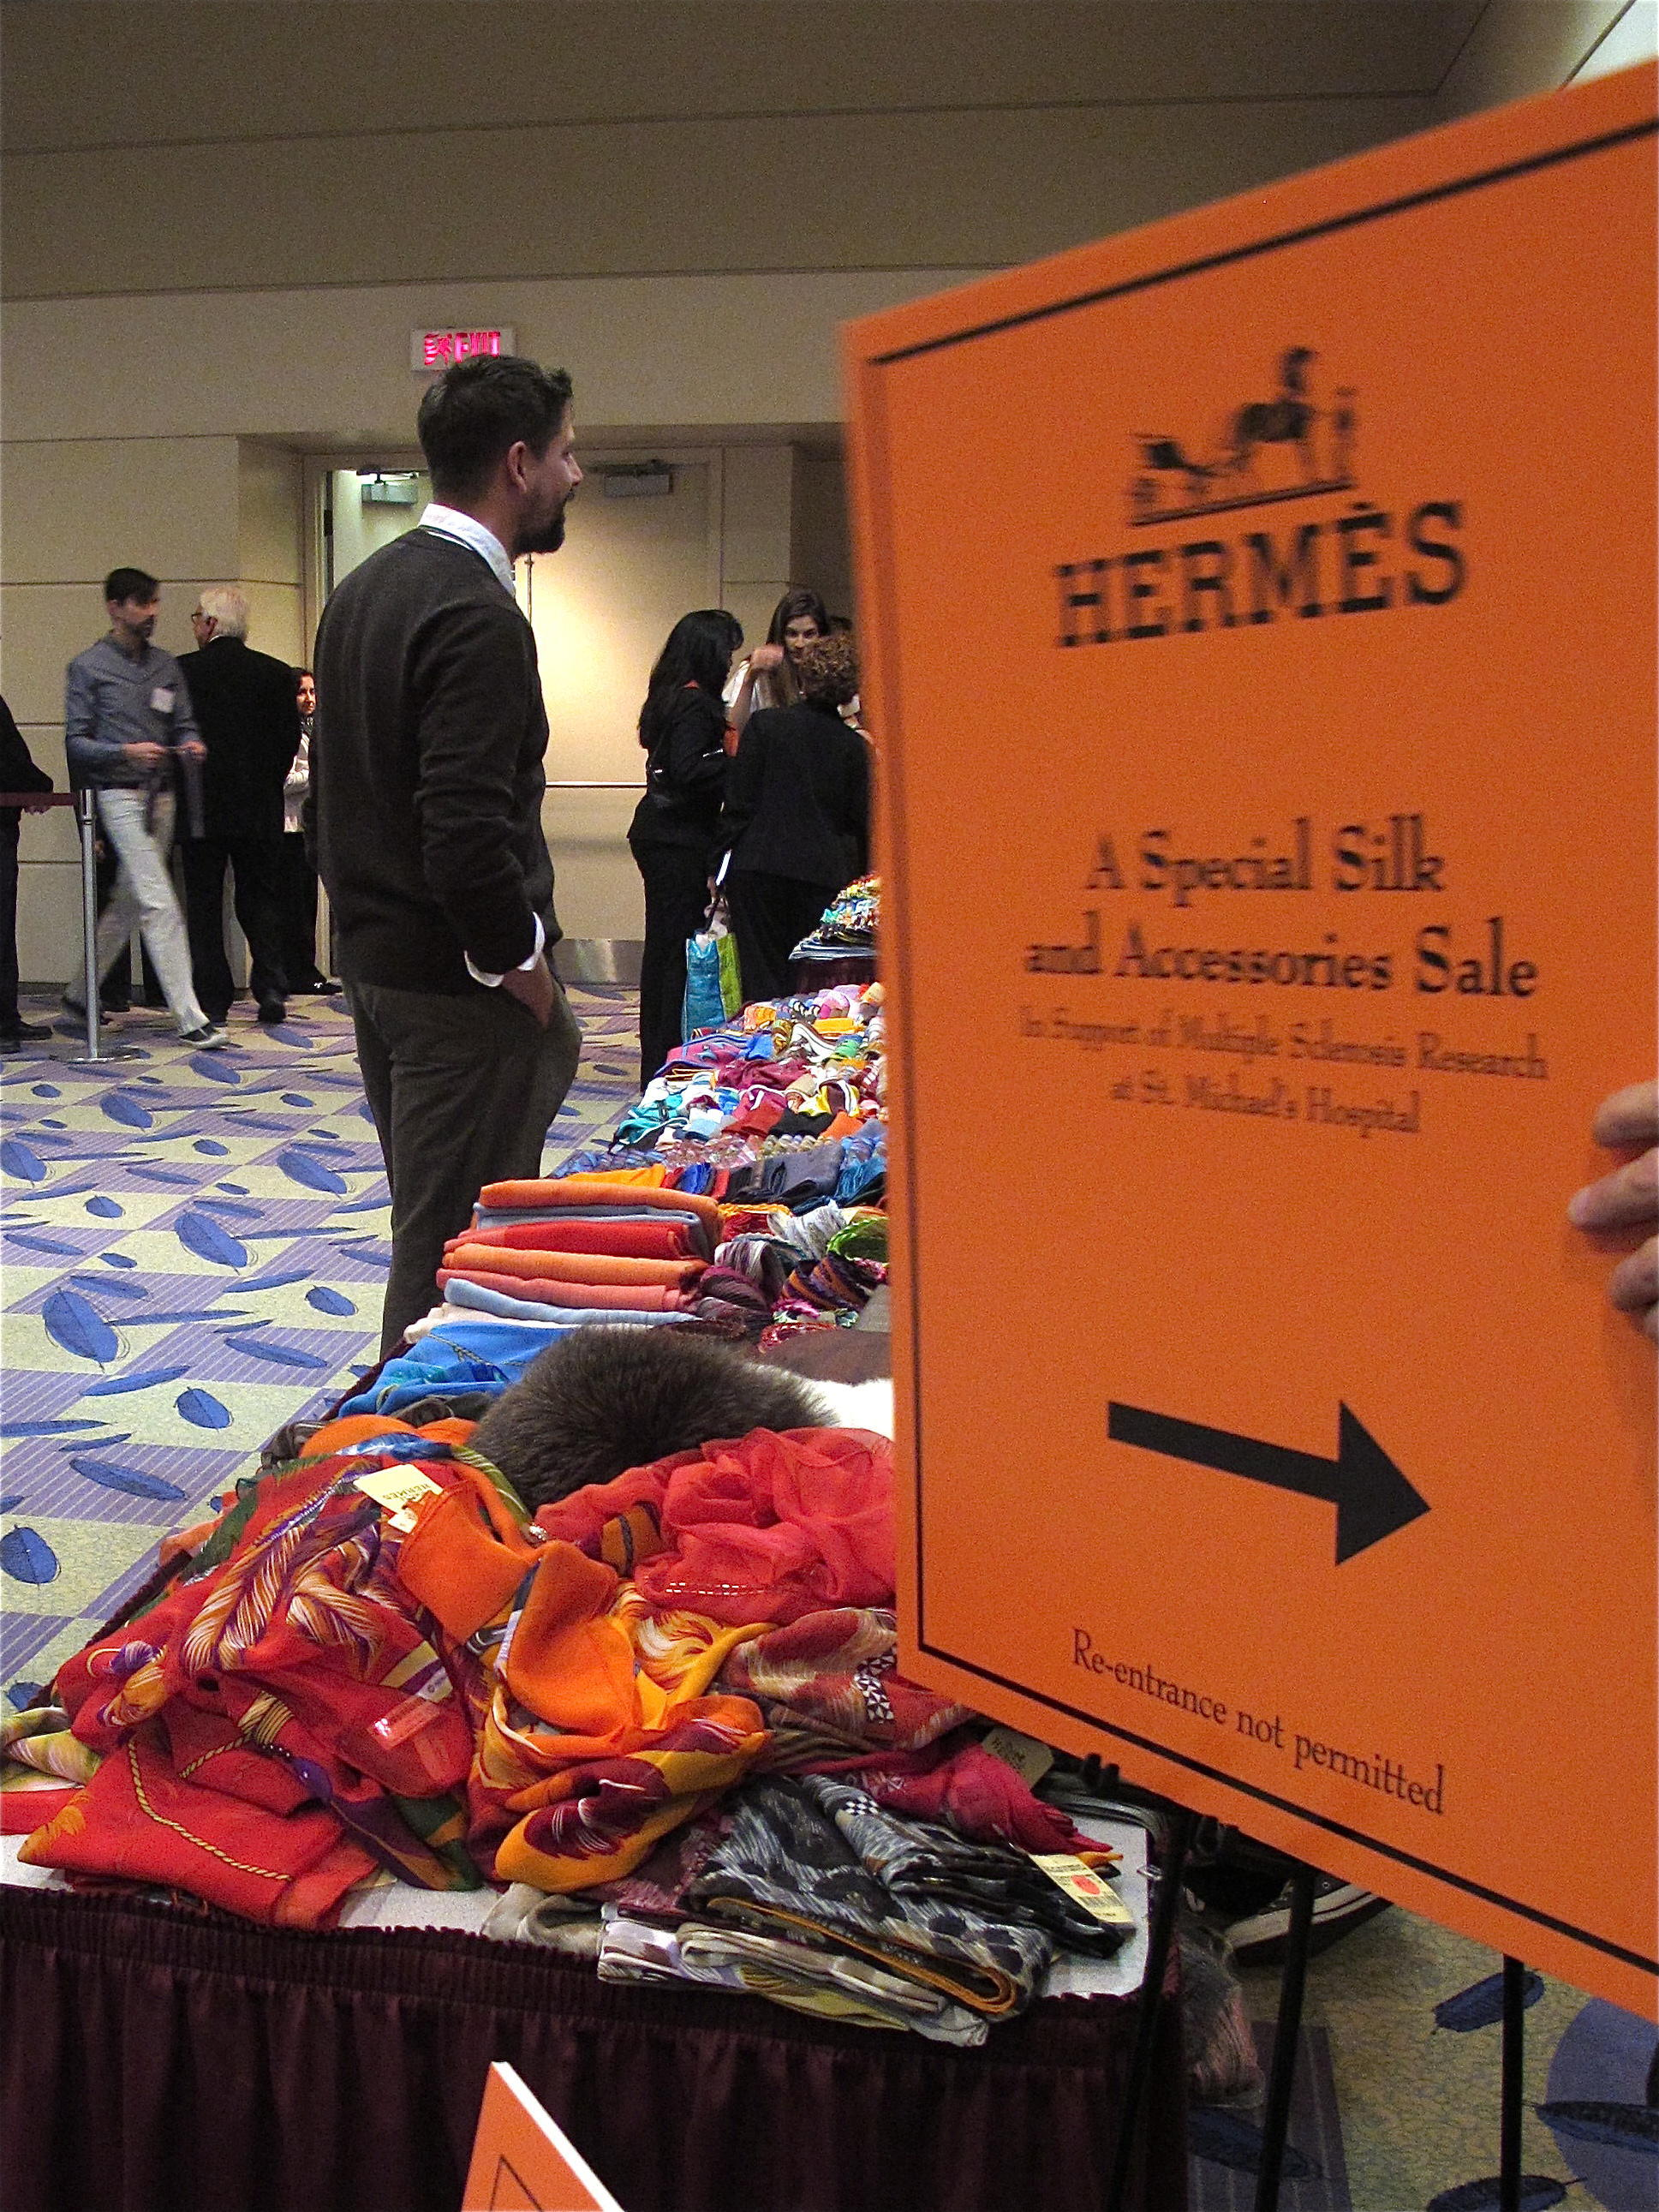 dfabfea4a12 Editor s Diary  Behind-the-Scenes at the Hermès Sample Sale - Flare